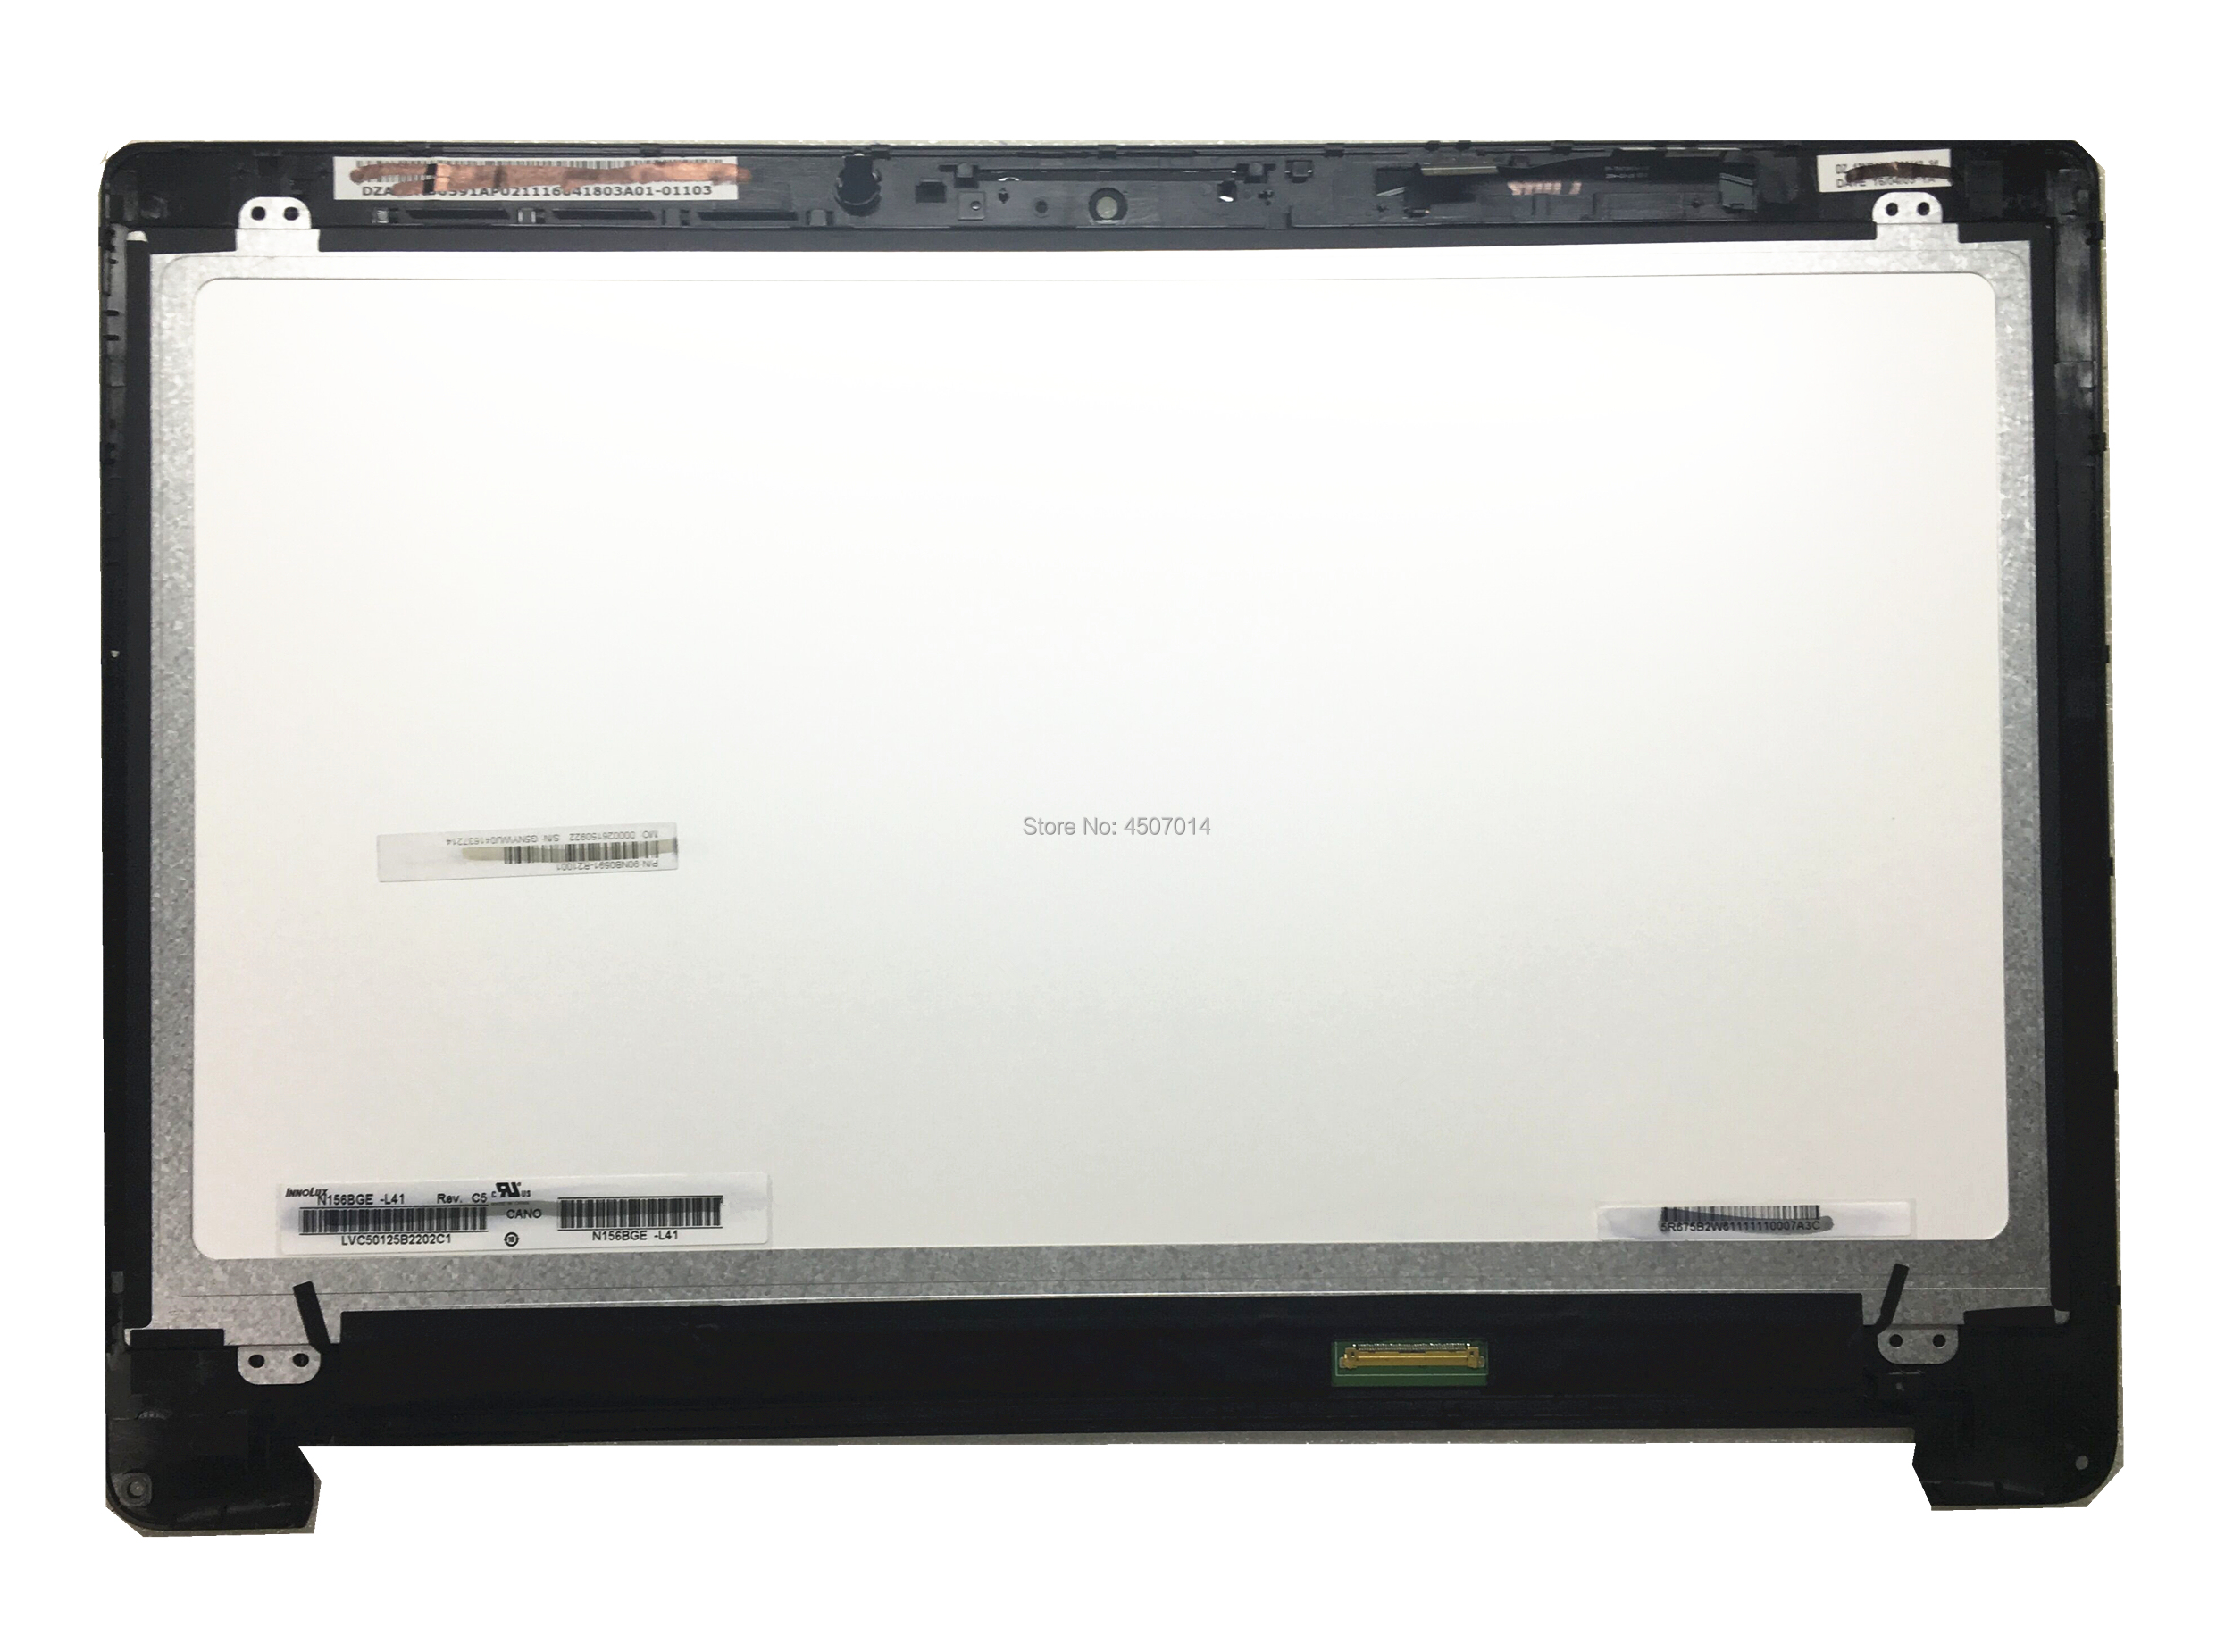 Free Shipping N156BGE-L41 Laptop Lcd Screen assembly fit for ASUS TP500 TP500LA Lcd Screen 1366*768 LVDS 40 Pins free shipping n133bge l41 rev c3 for asus s300c lcd screen up down screw holes slim laptop led display screen